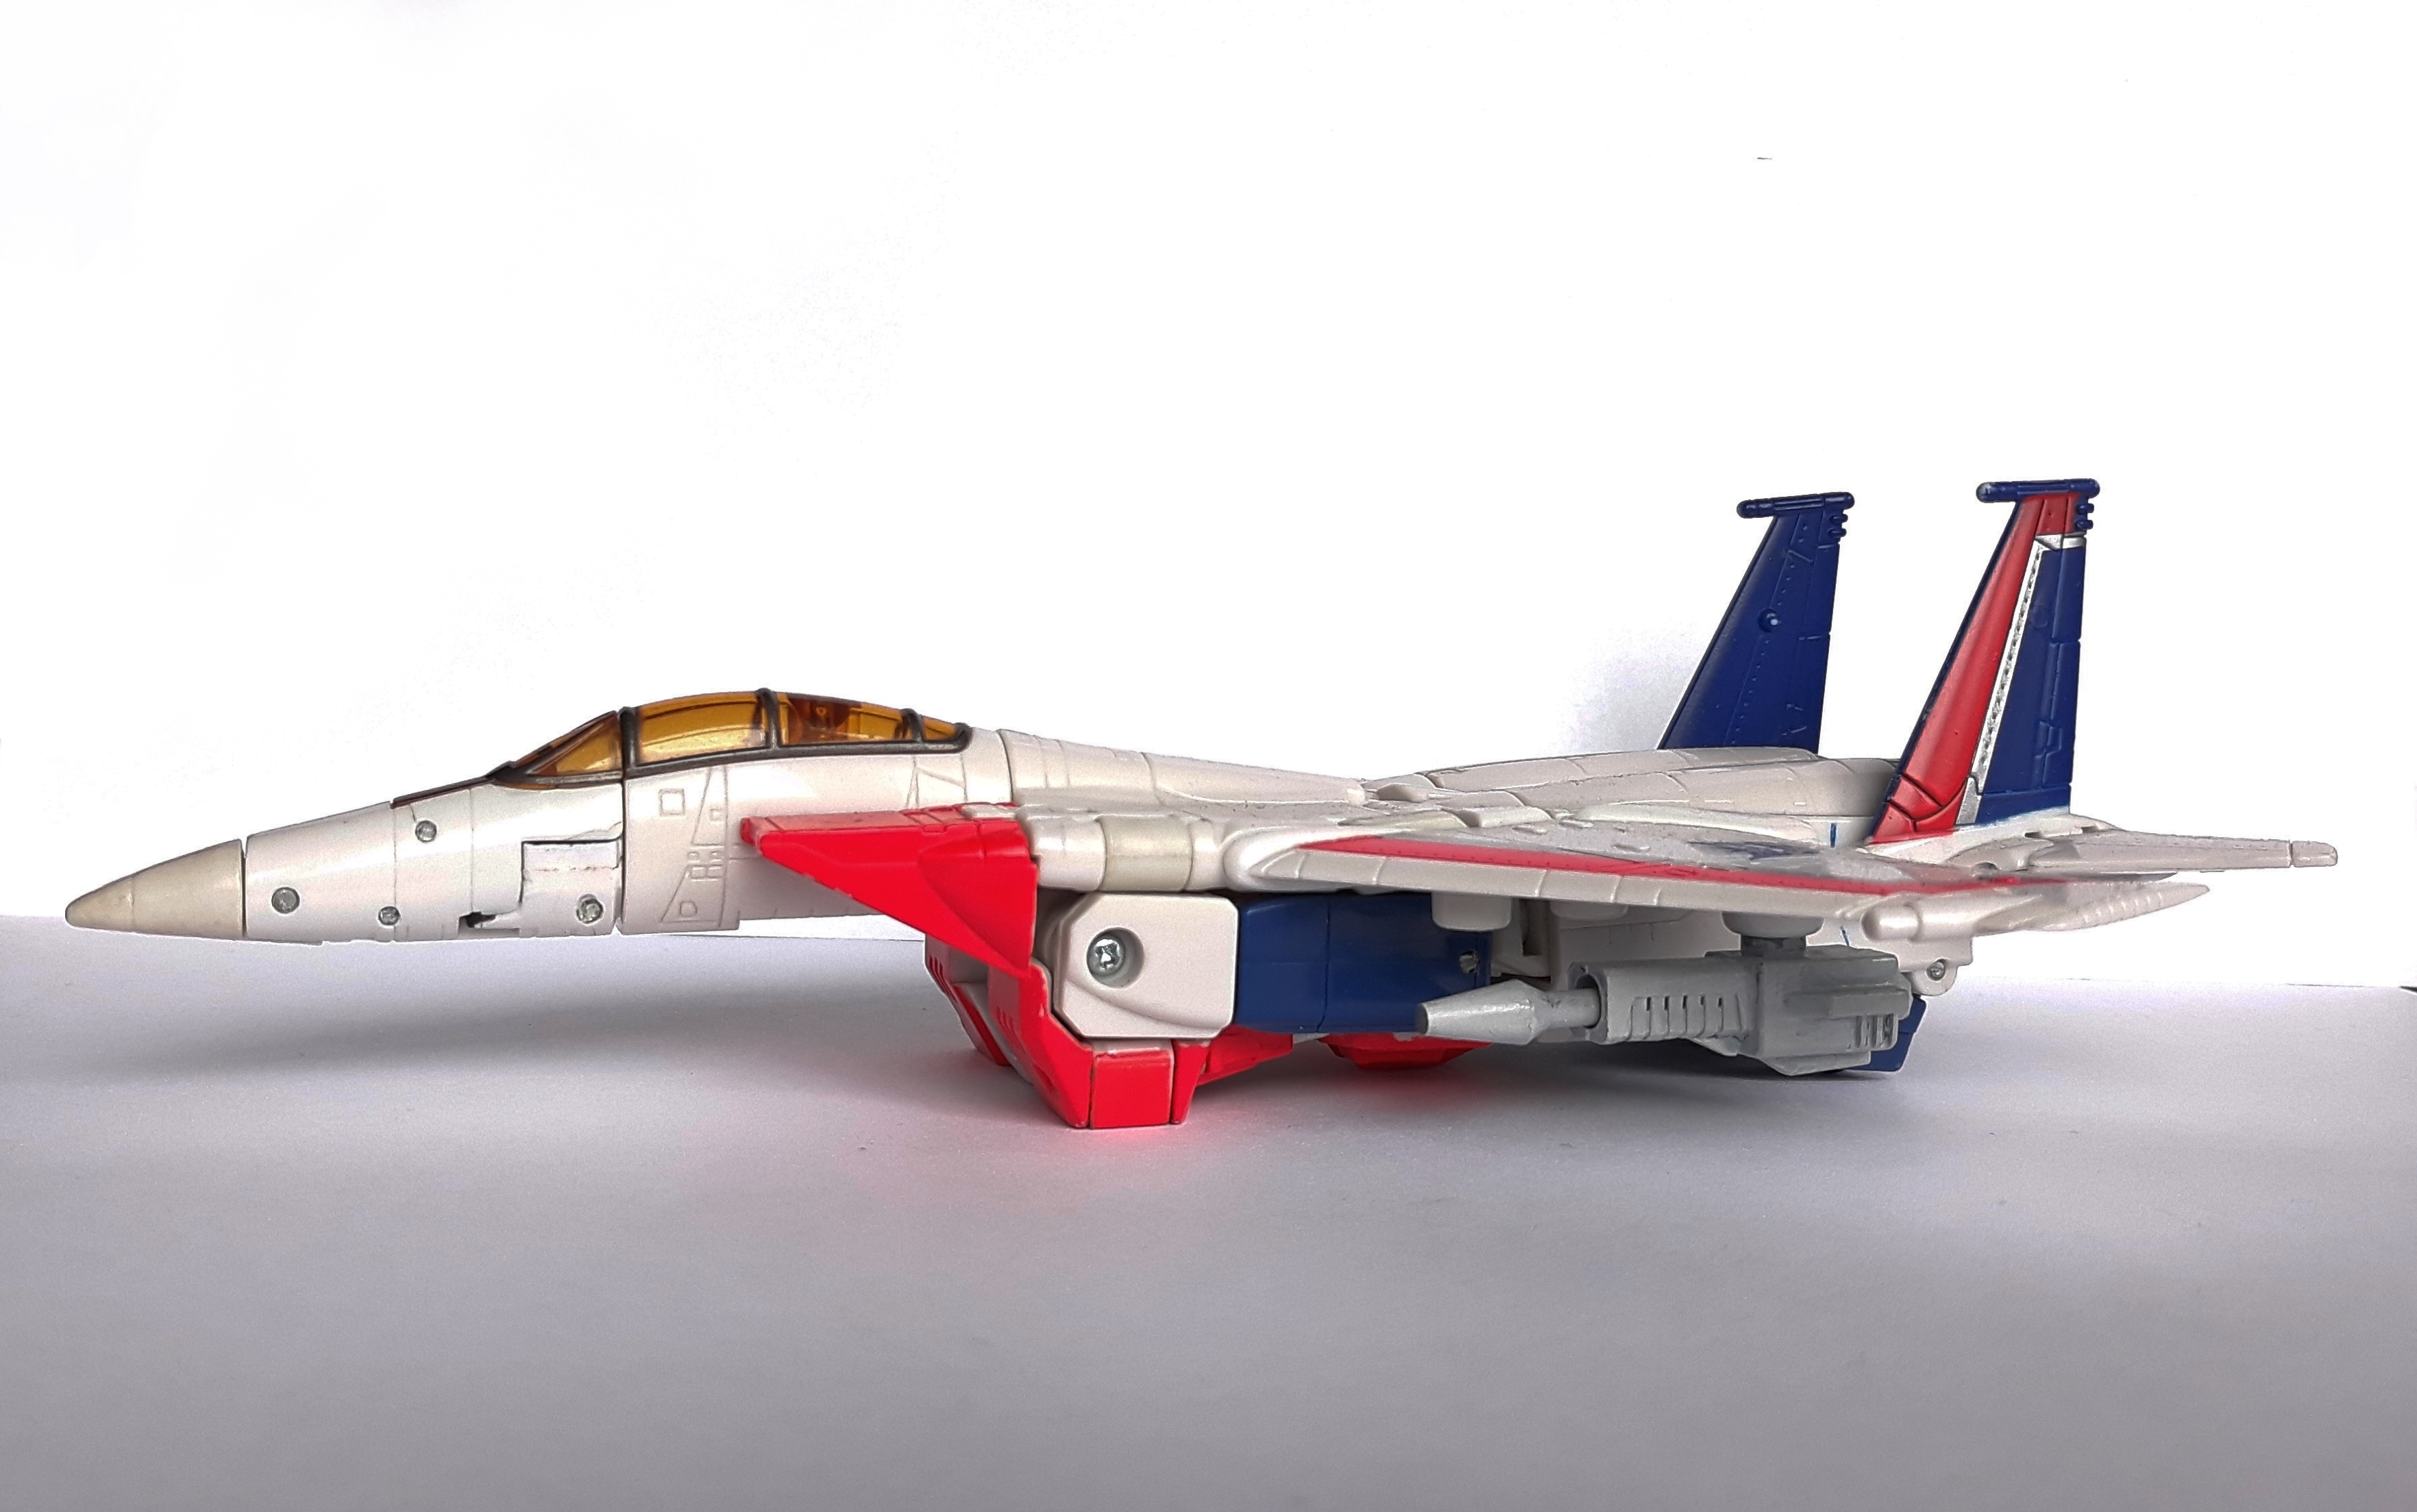 starscream jet.jpg Download STL file Starscream Retractable Null Rays • 3D printer object, CyrylXI